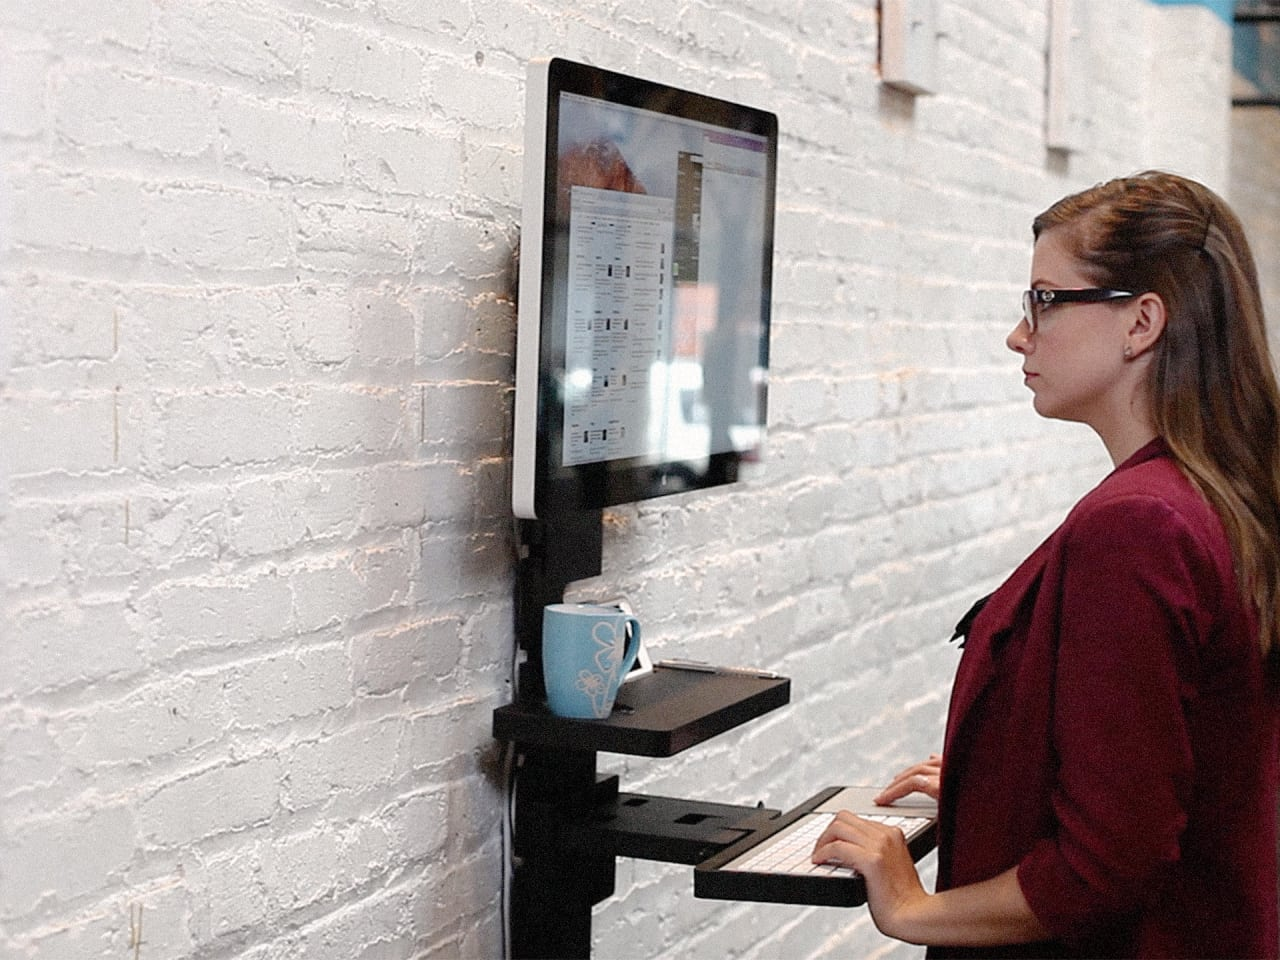 This Wall Mounted Standing Desk Is Perfect For Coffee Shops And Shared